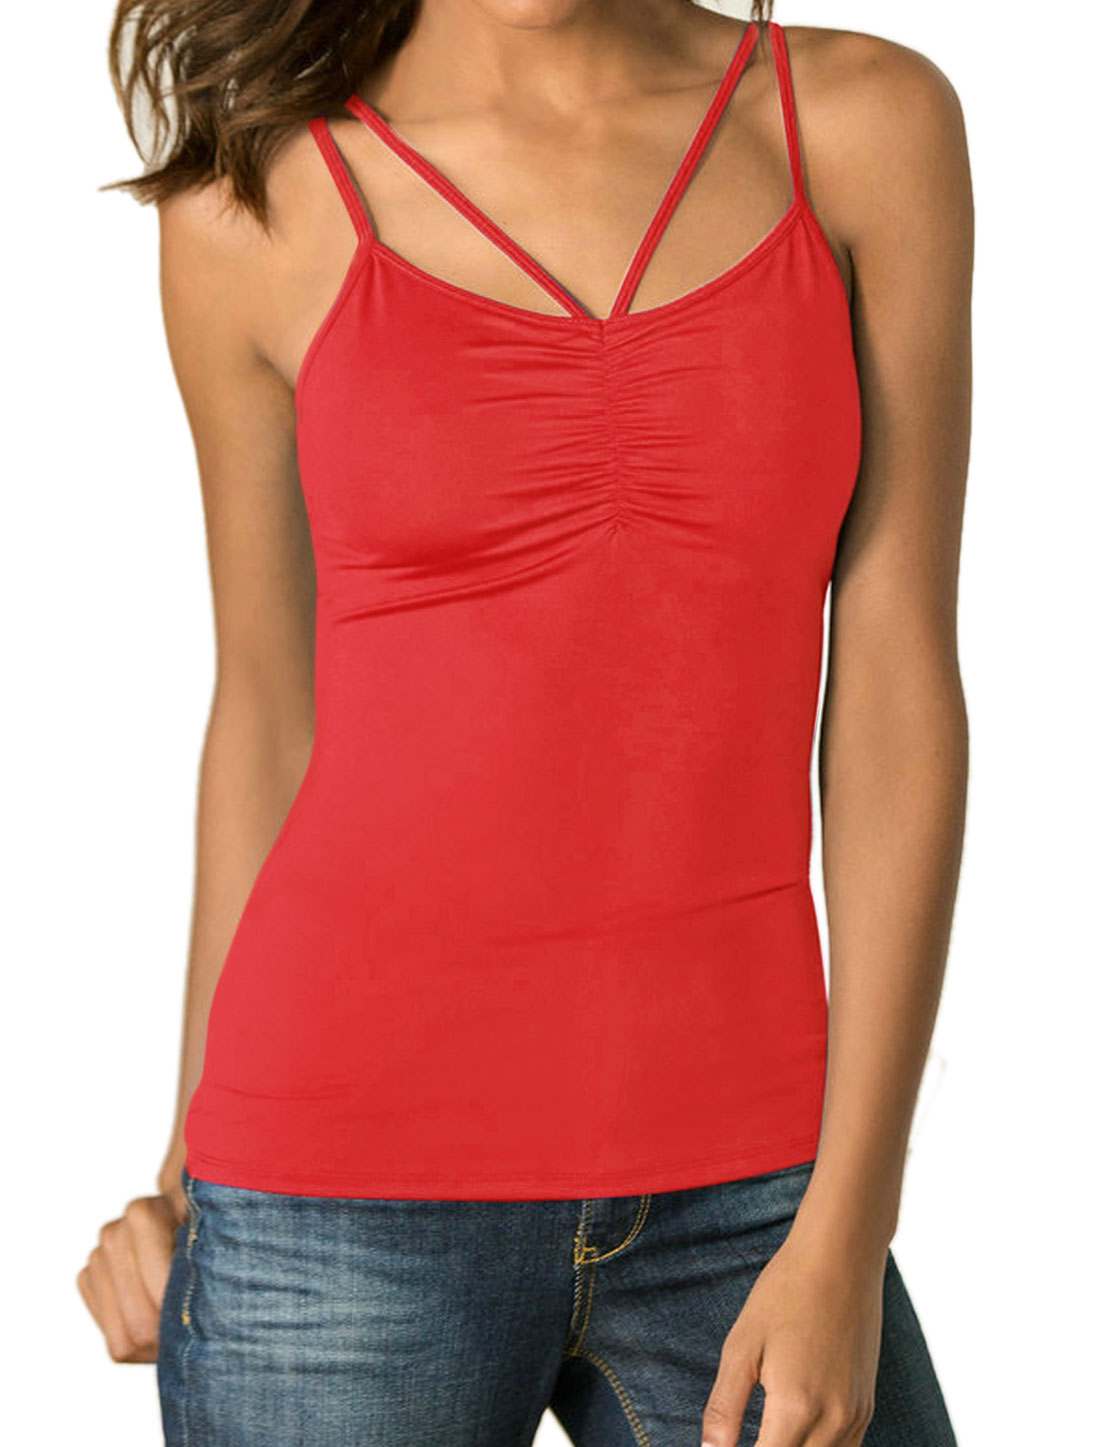 Women Strappy Pure Ruched Upper Stretchy Cami Top Red L